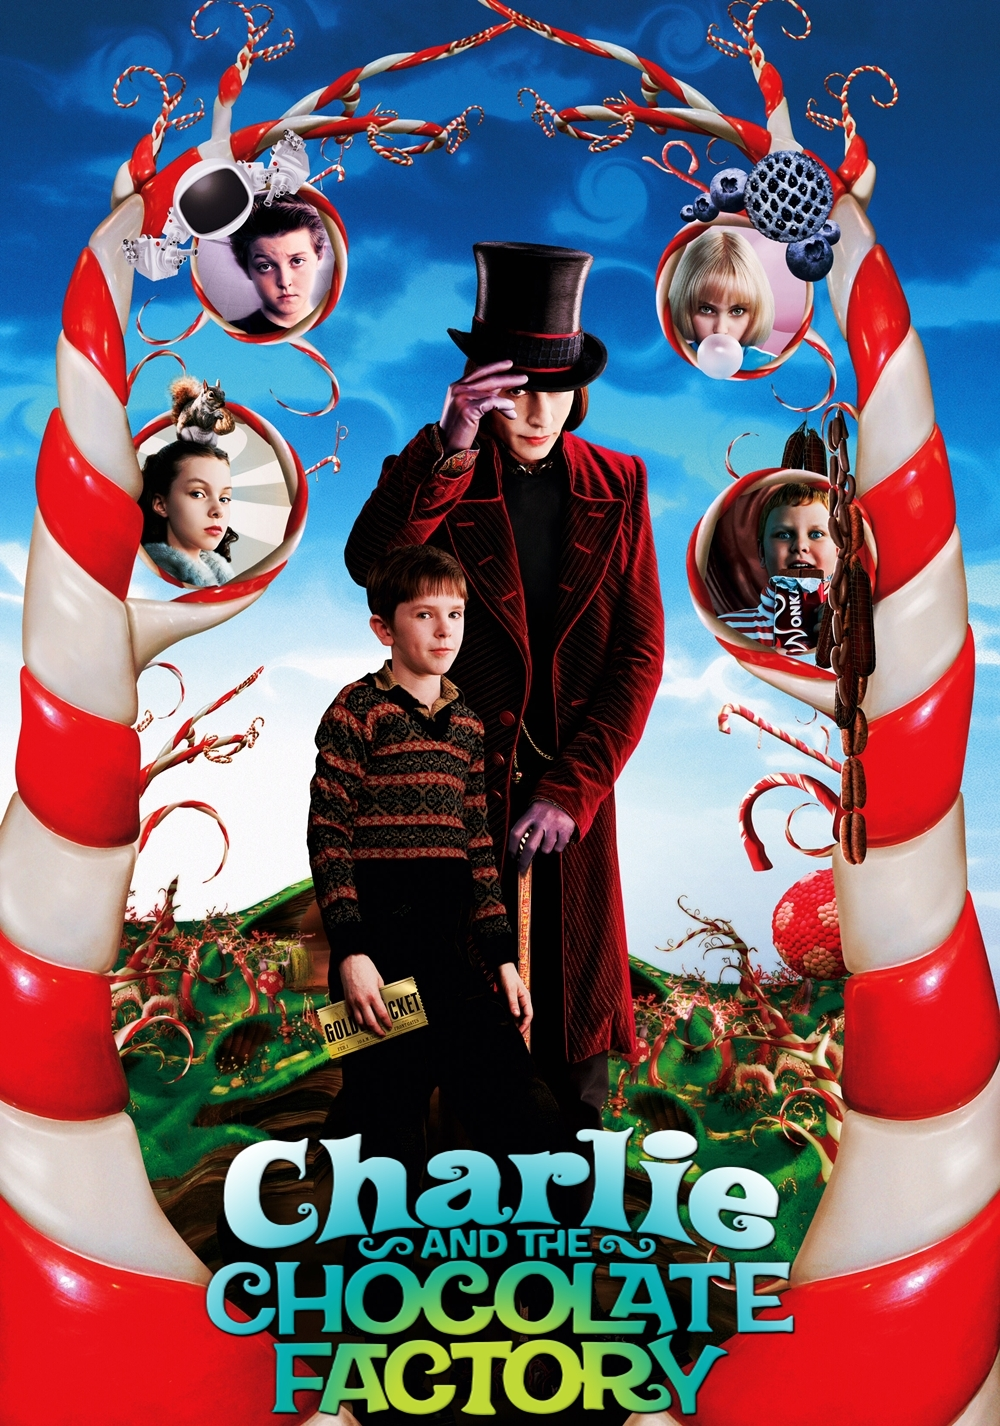 Narrator - Charlie and the Chocolate Factory